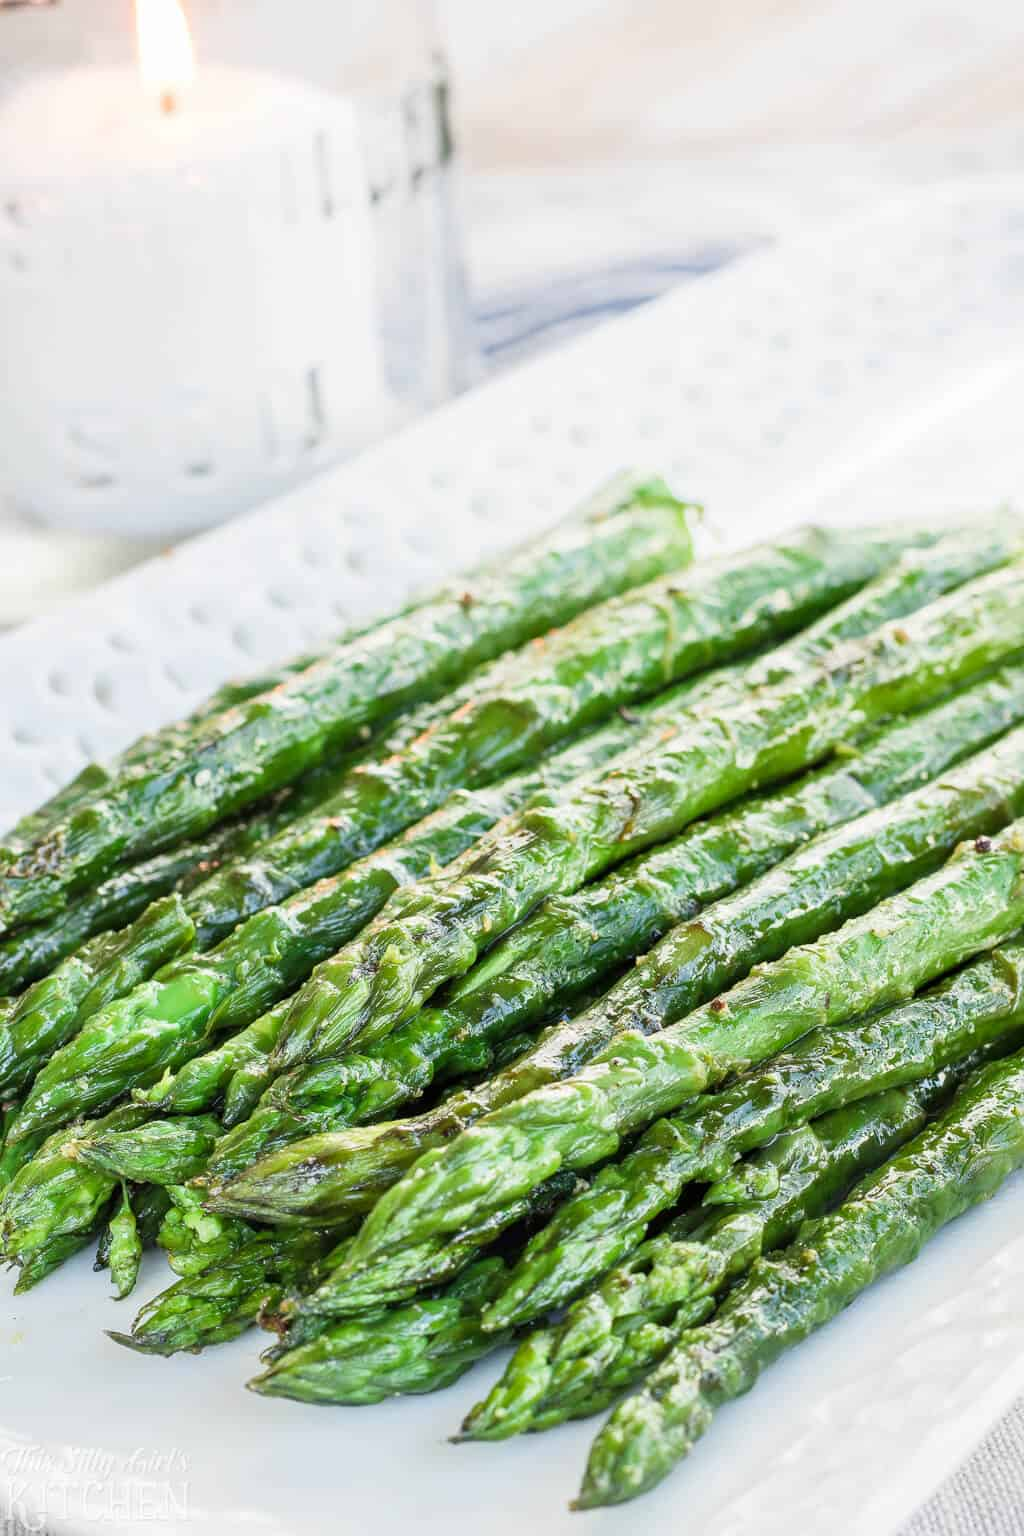 Grilled Asparagus, made with 5 simple ingredients and ready in under 15 minutes! #Recipe from ThisSillyGirlsKitchen.com #asparagus #grilledasparagus